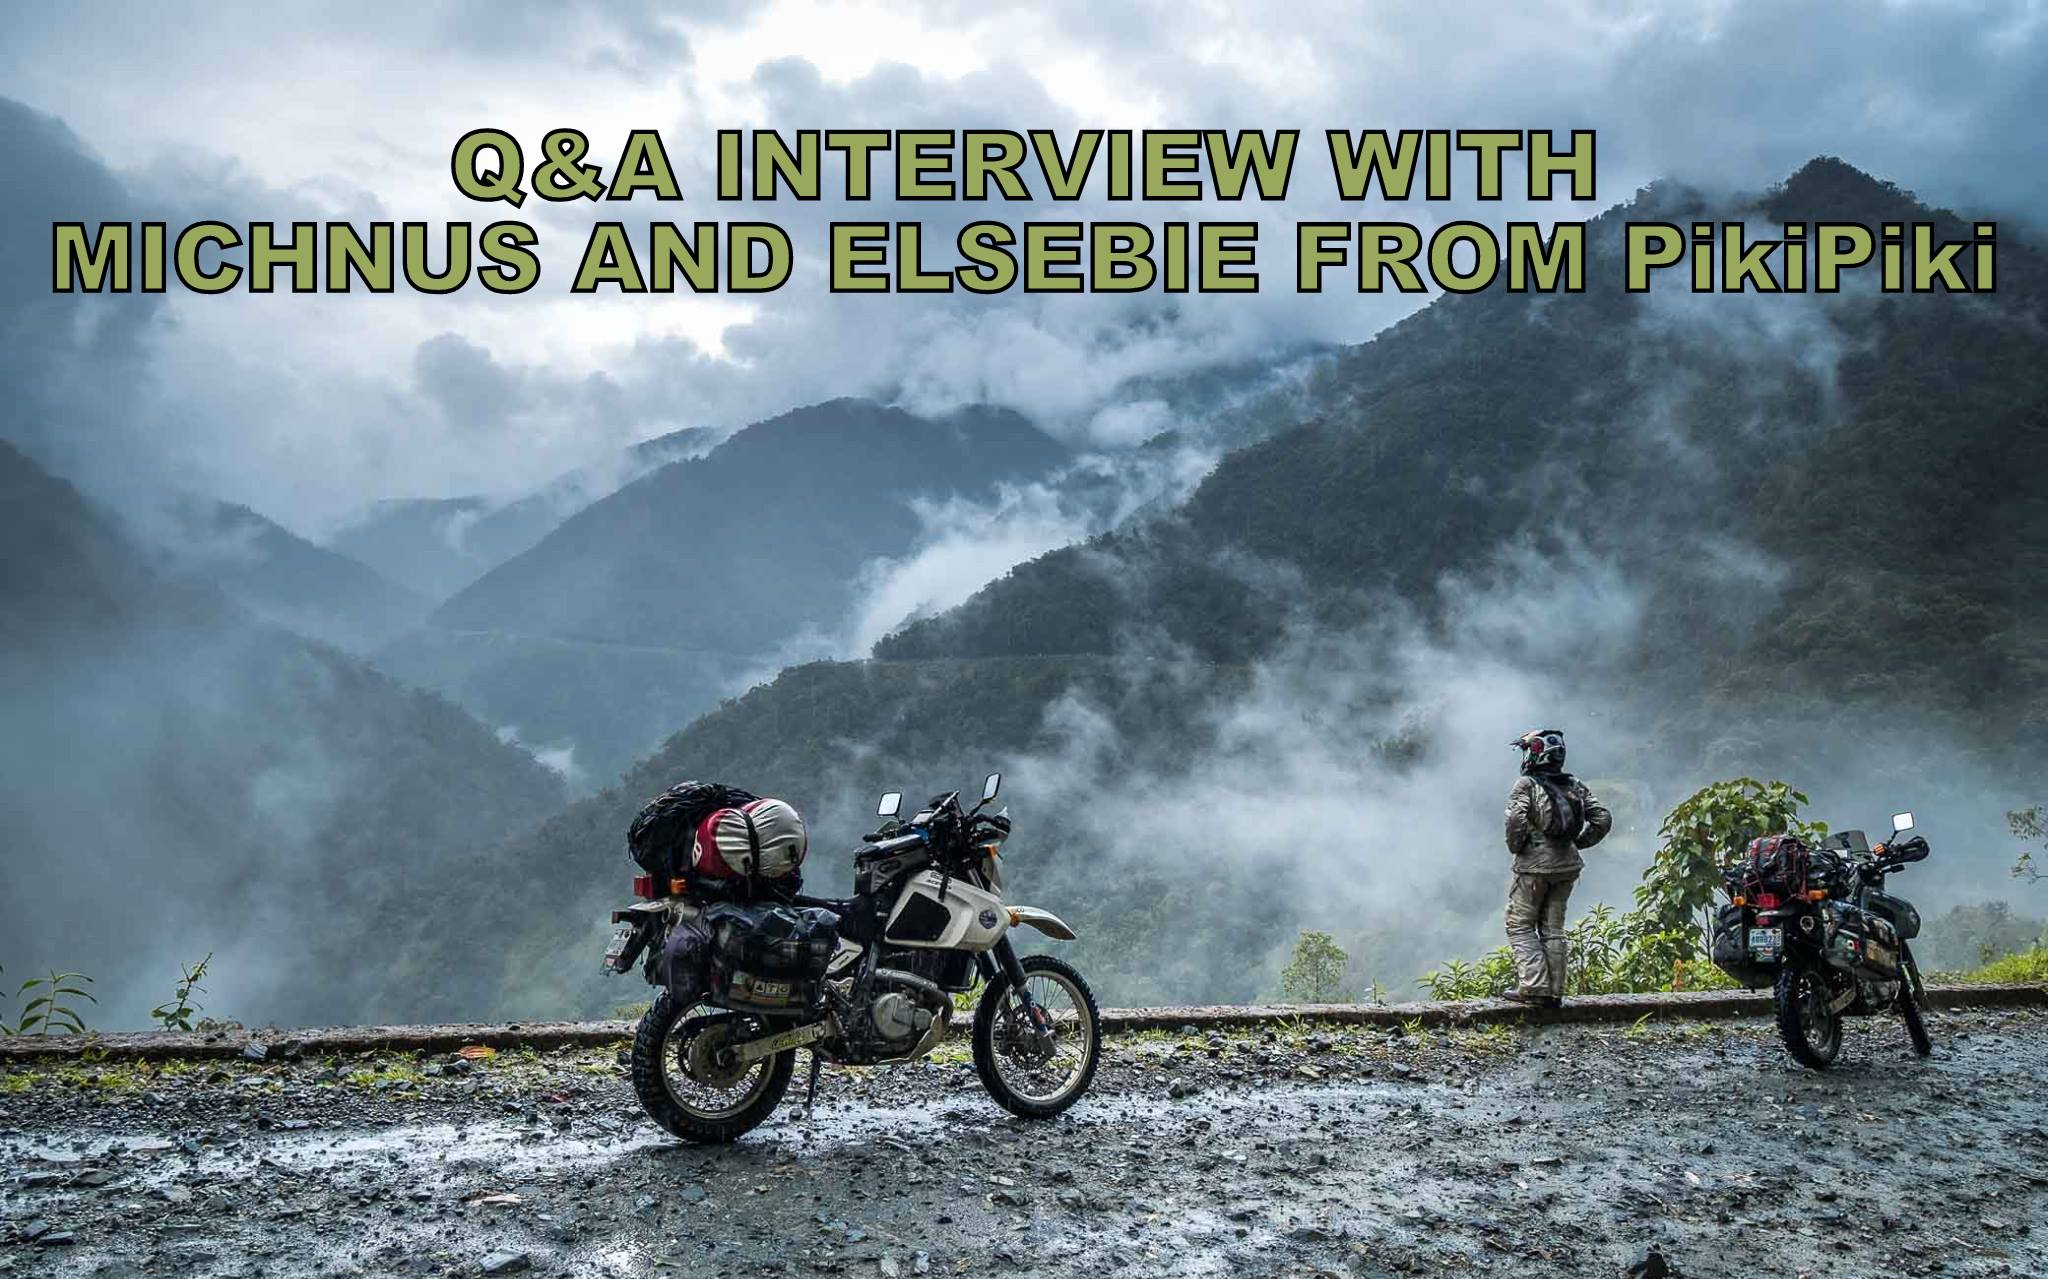 Q&A interview with Michnus and Elsebie f